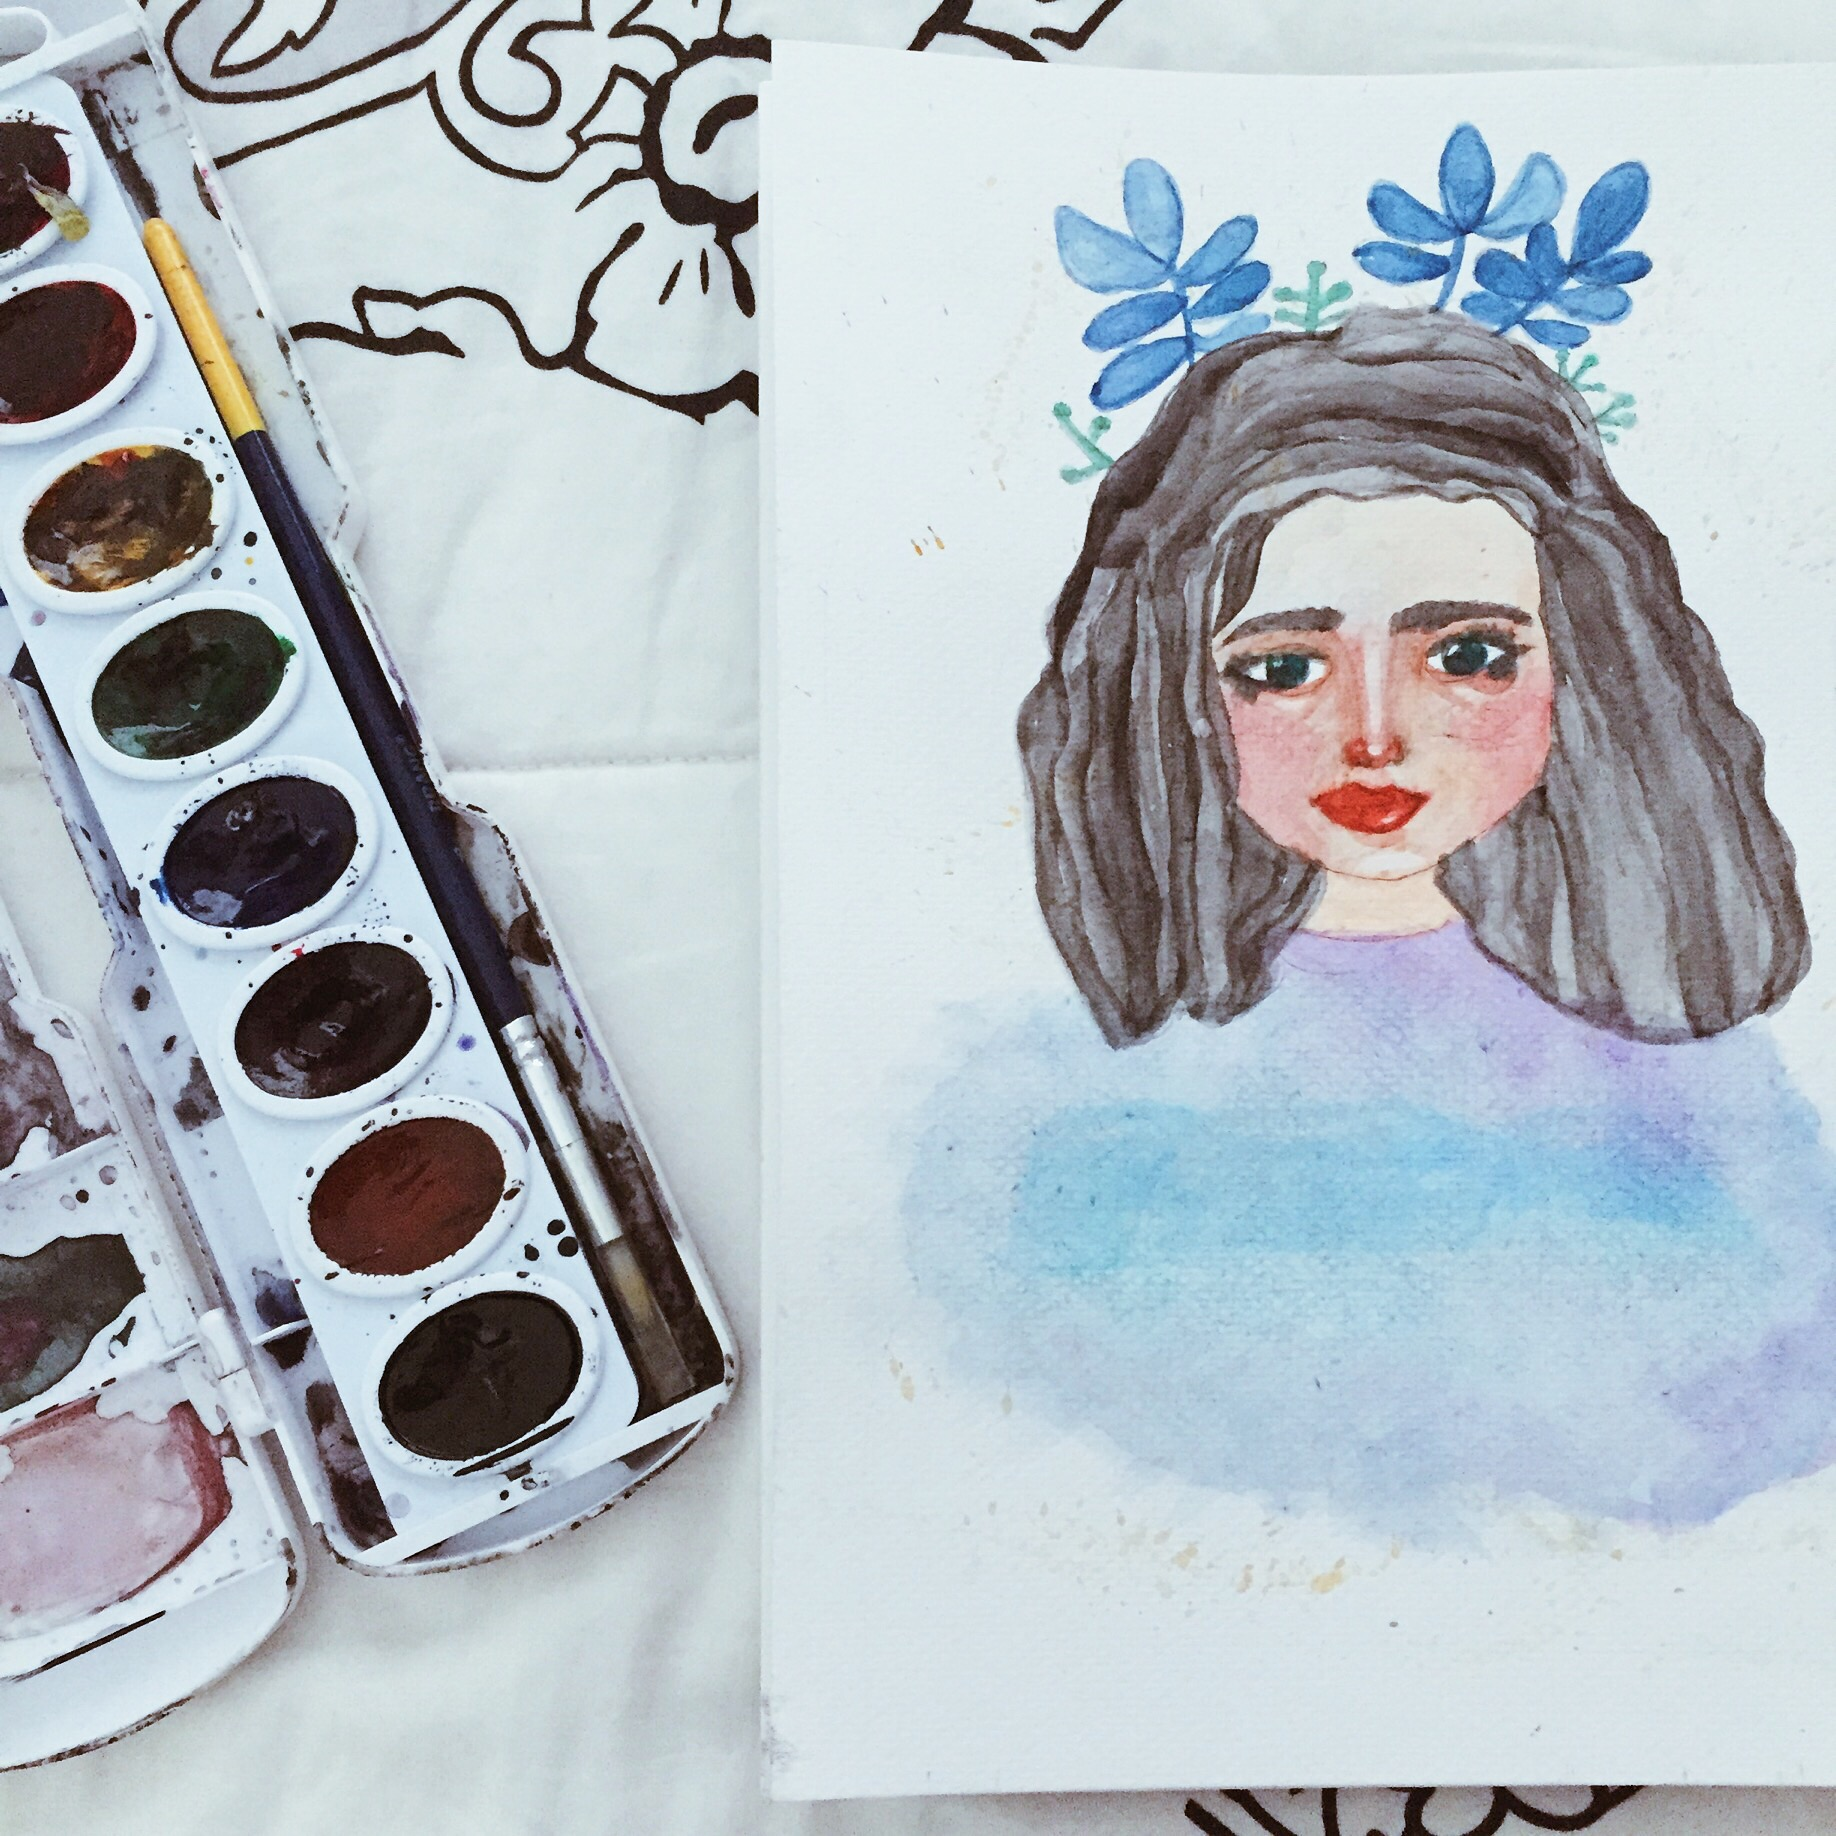 ARTIST FEATURE: Kathrynne Yu